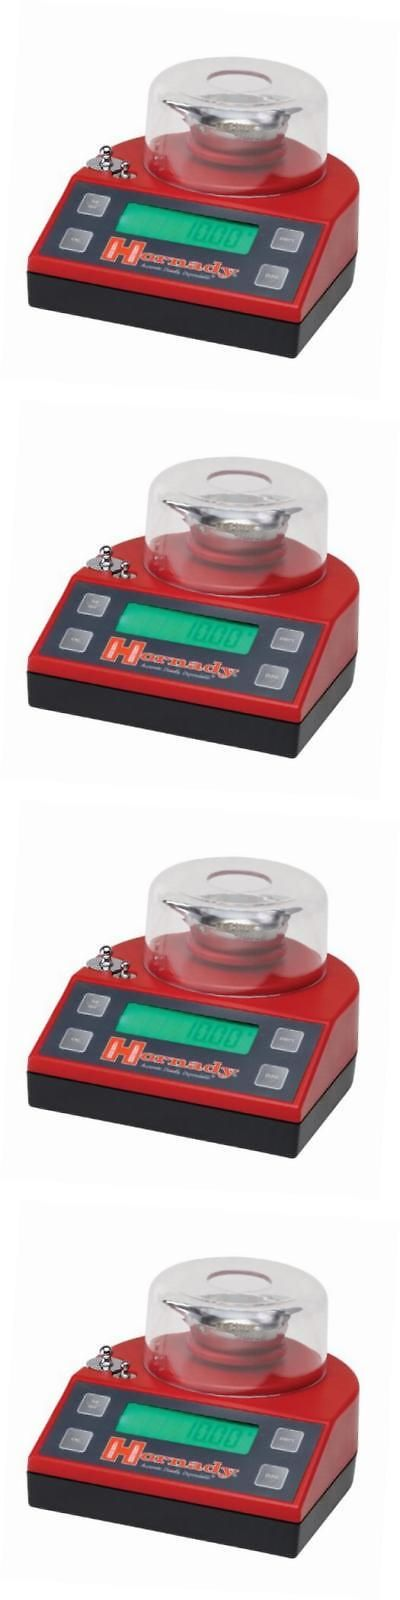 Powder Measures Scales 71119: Electronic Bench Scale 1500 Grain 050108 -> BUY IT NOW ONLY: $117.89 on eBay!